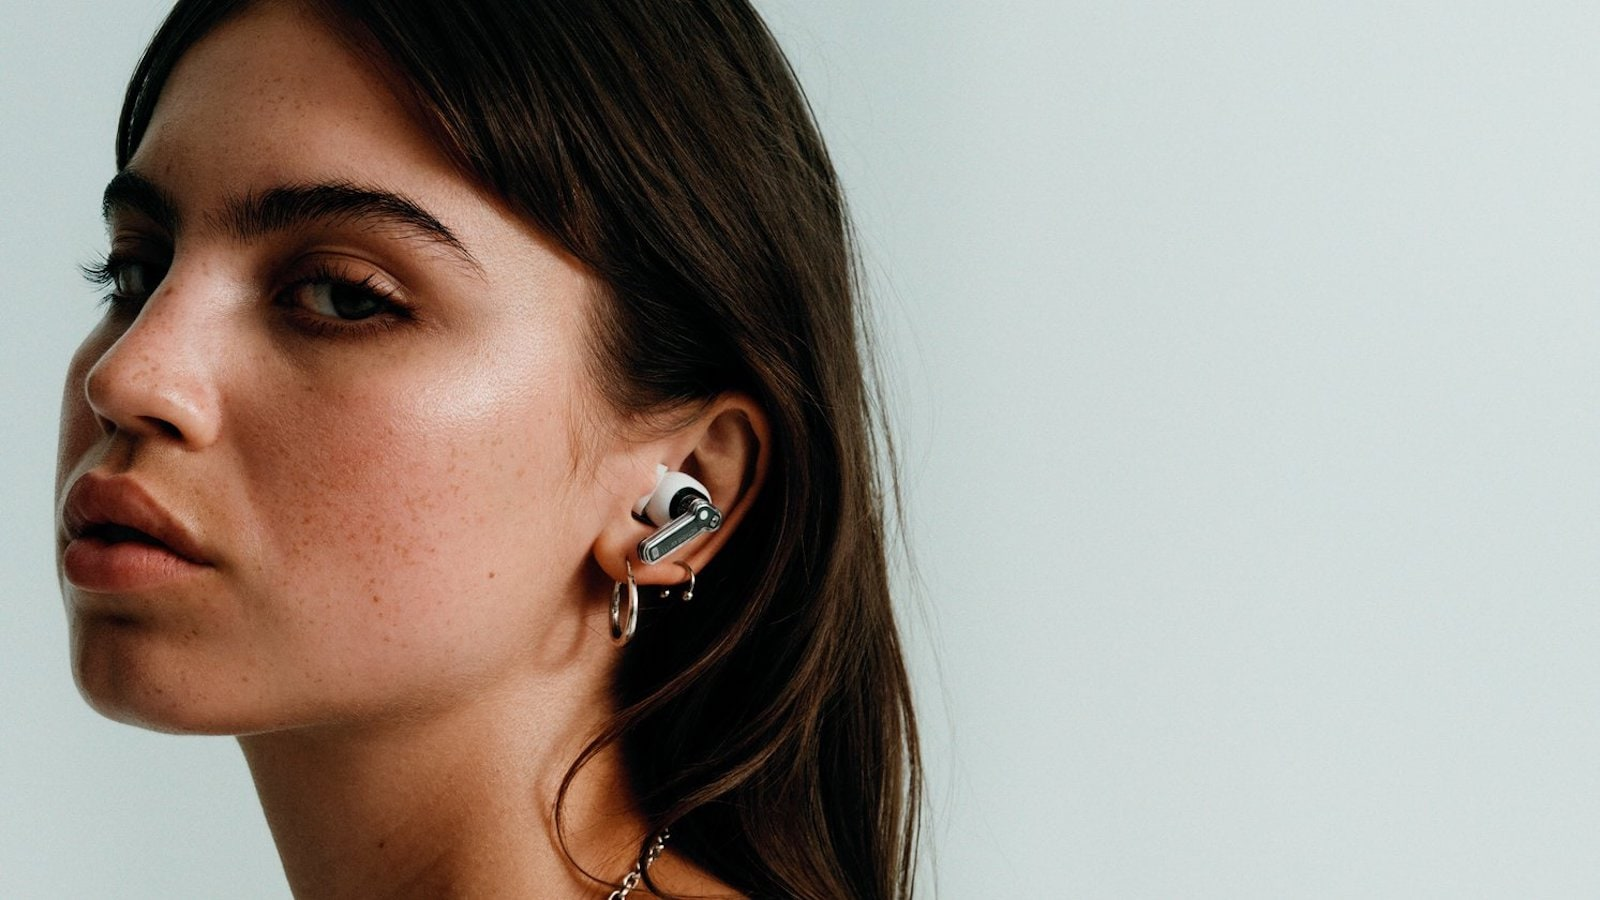 Nothing ear (1) lightweight earbuds use Clear Voice Technology and 3 high-definition mics